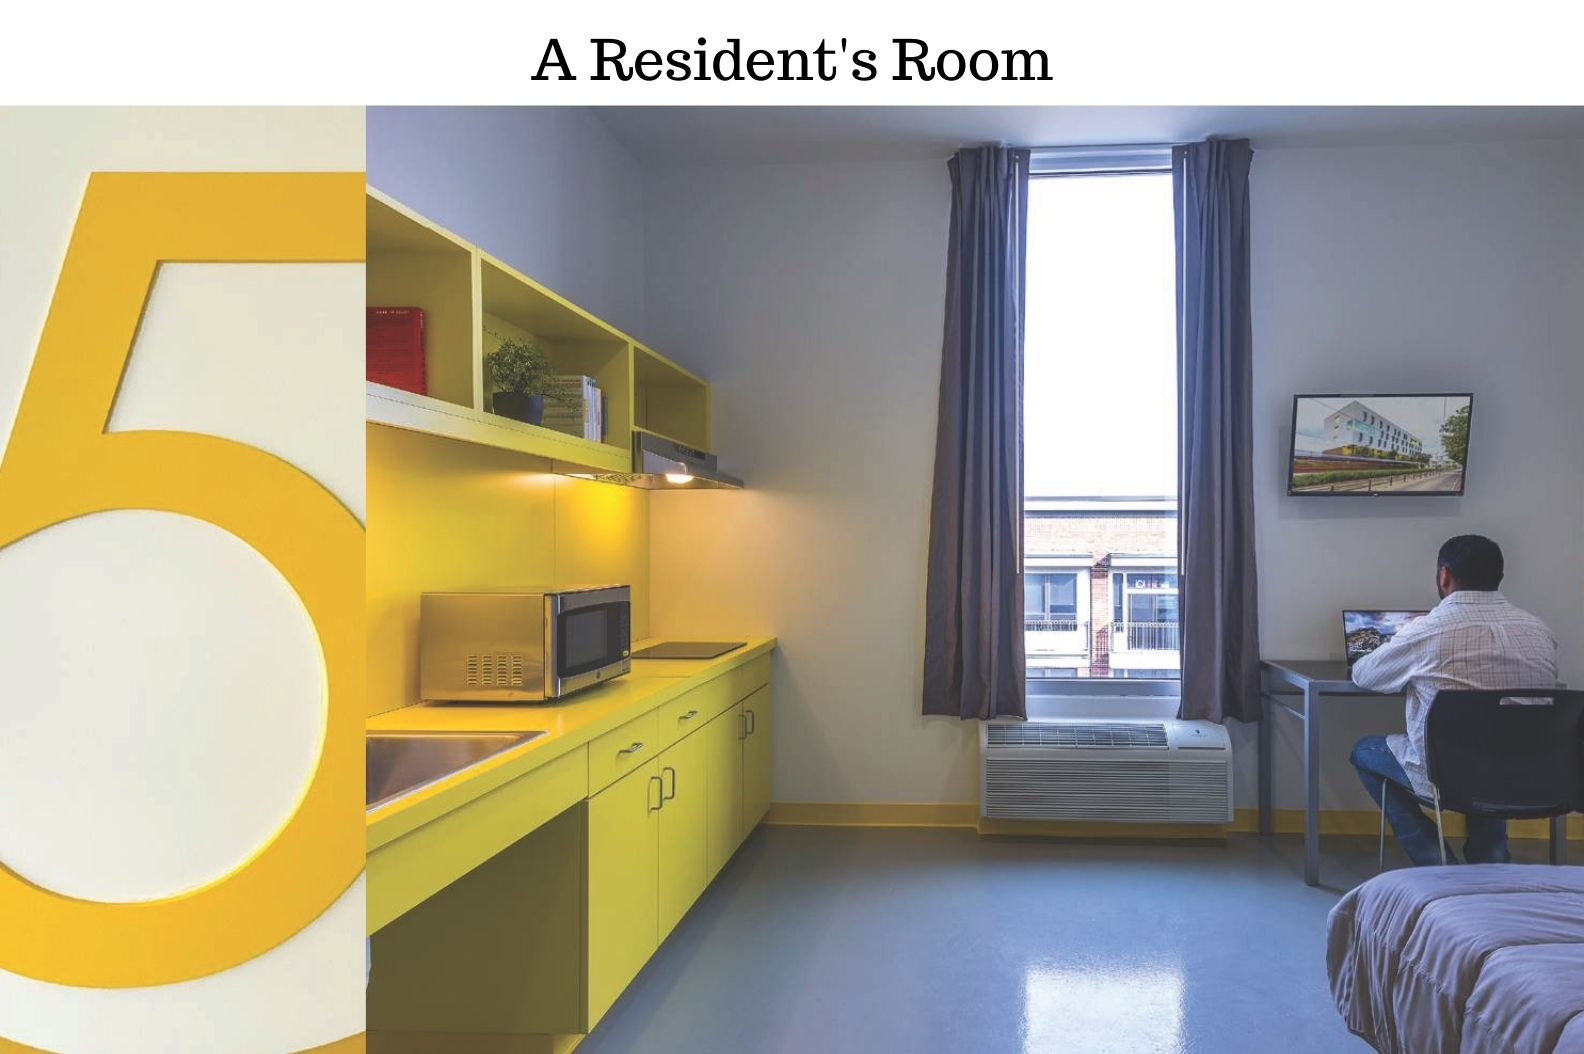 A Resident's Room